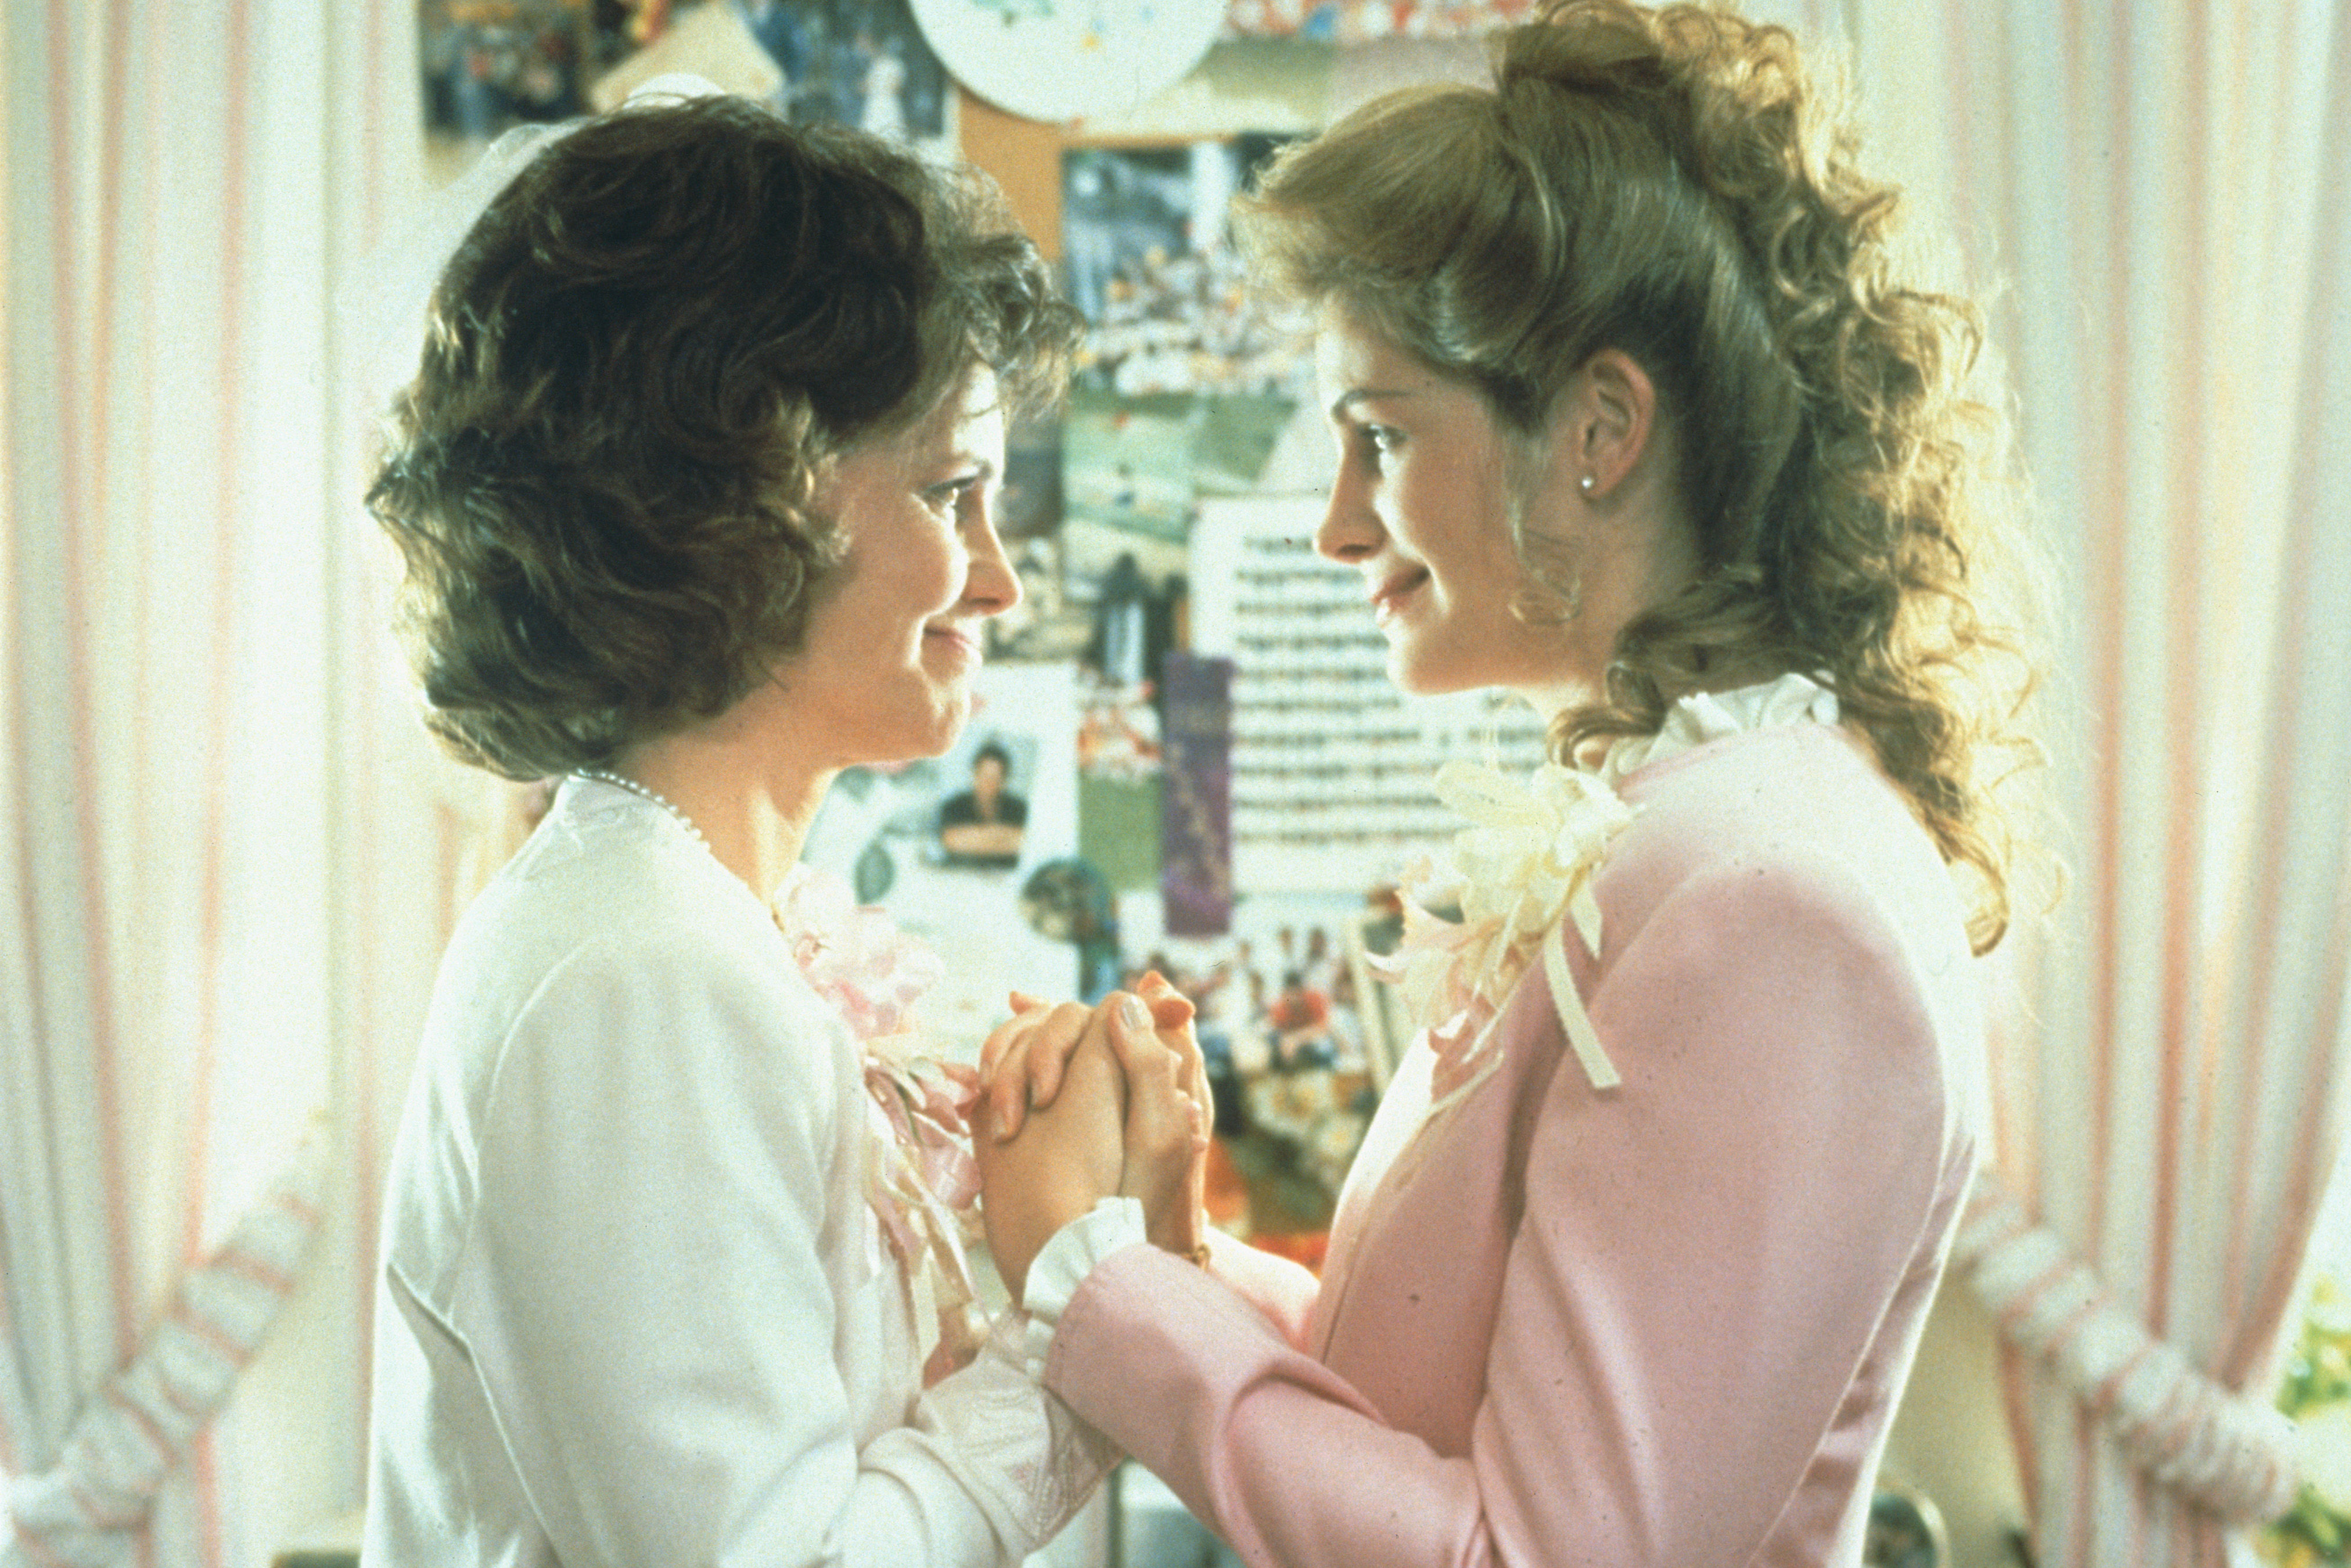 Julia Roberts Wasn't the Original Actor Cast as Shelby in <i>Steel Magnolias</i>